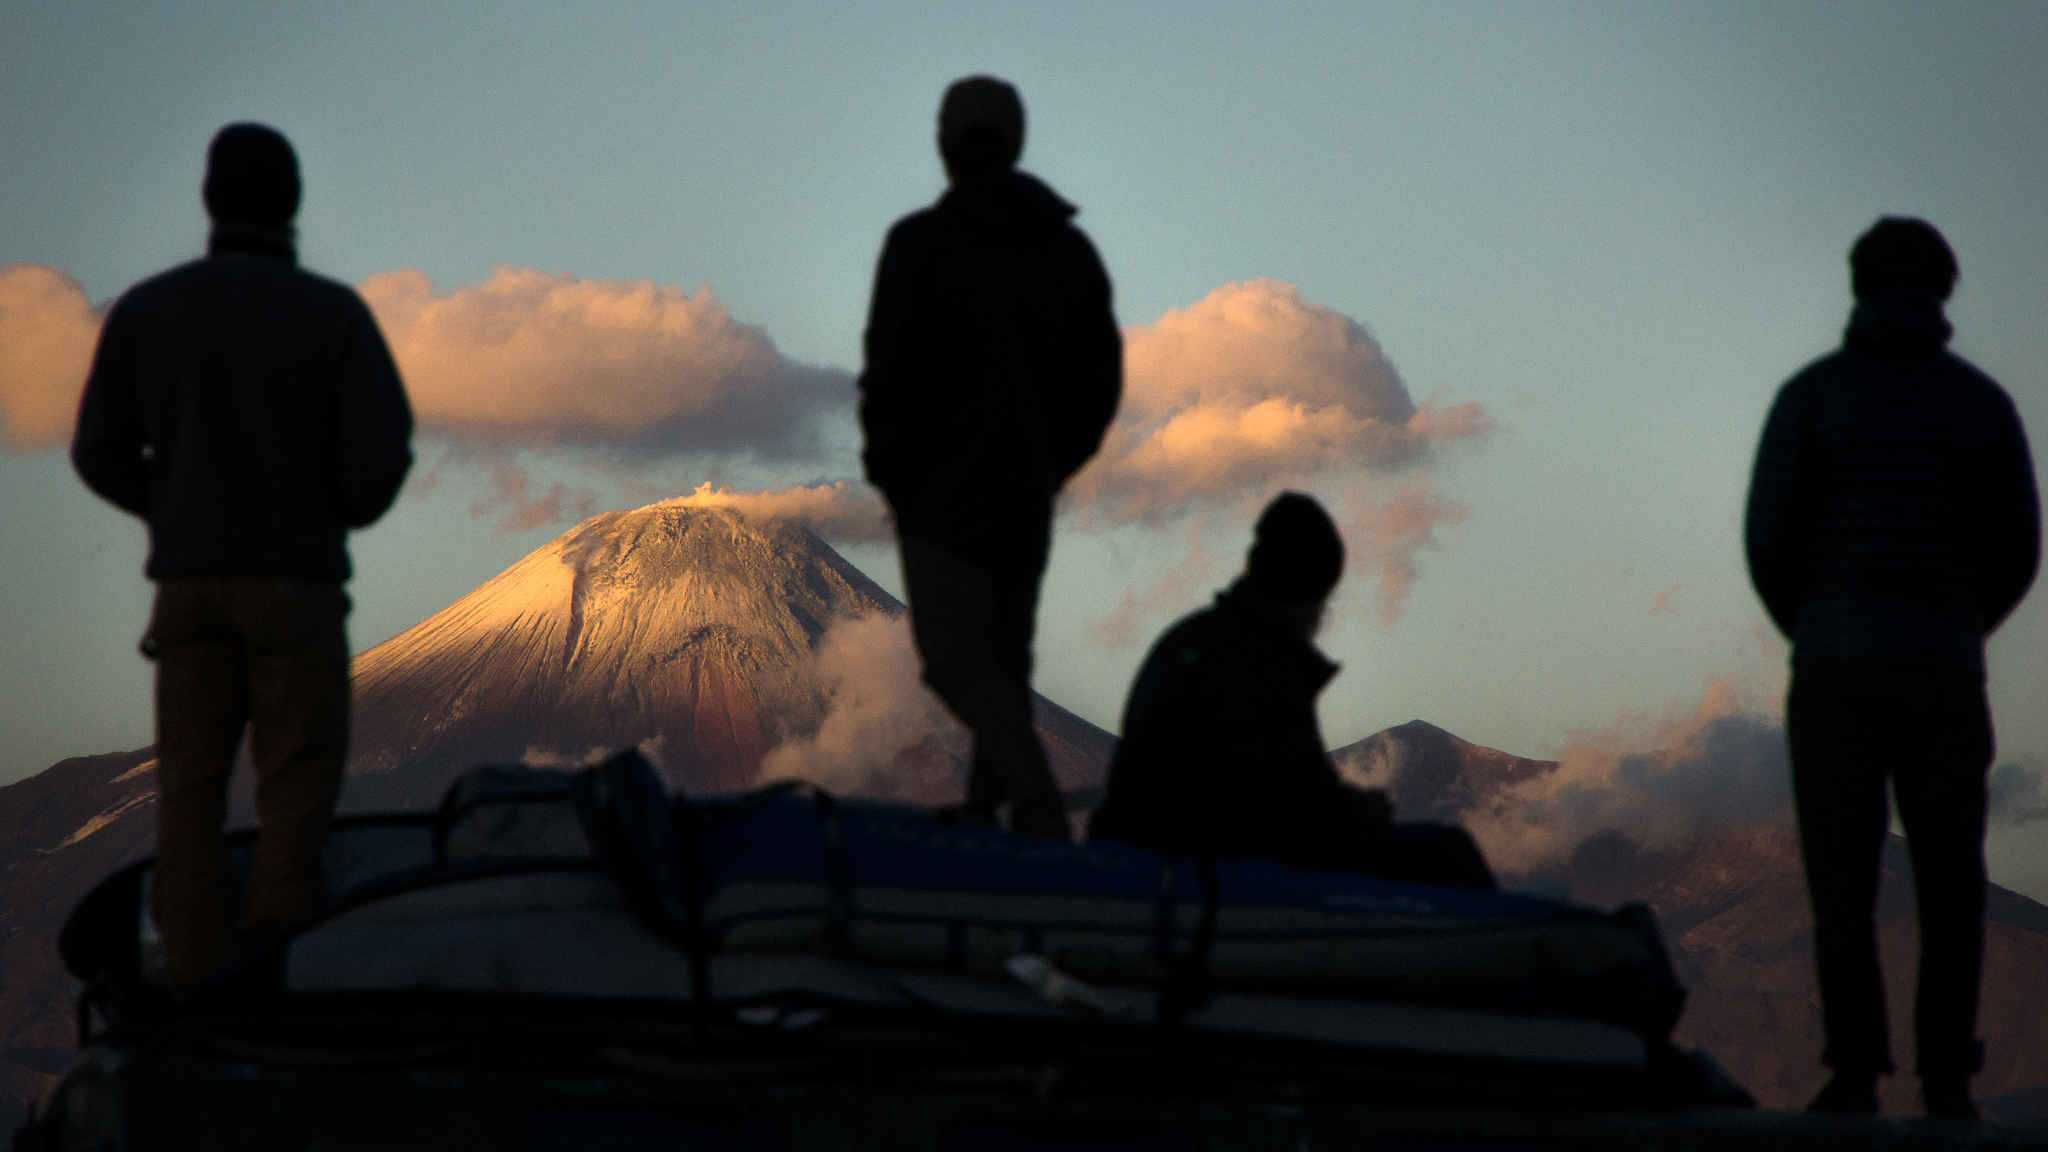 The Kamchatka Peninsula